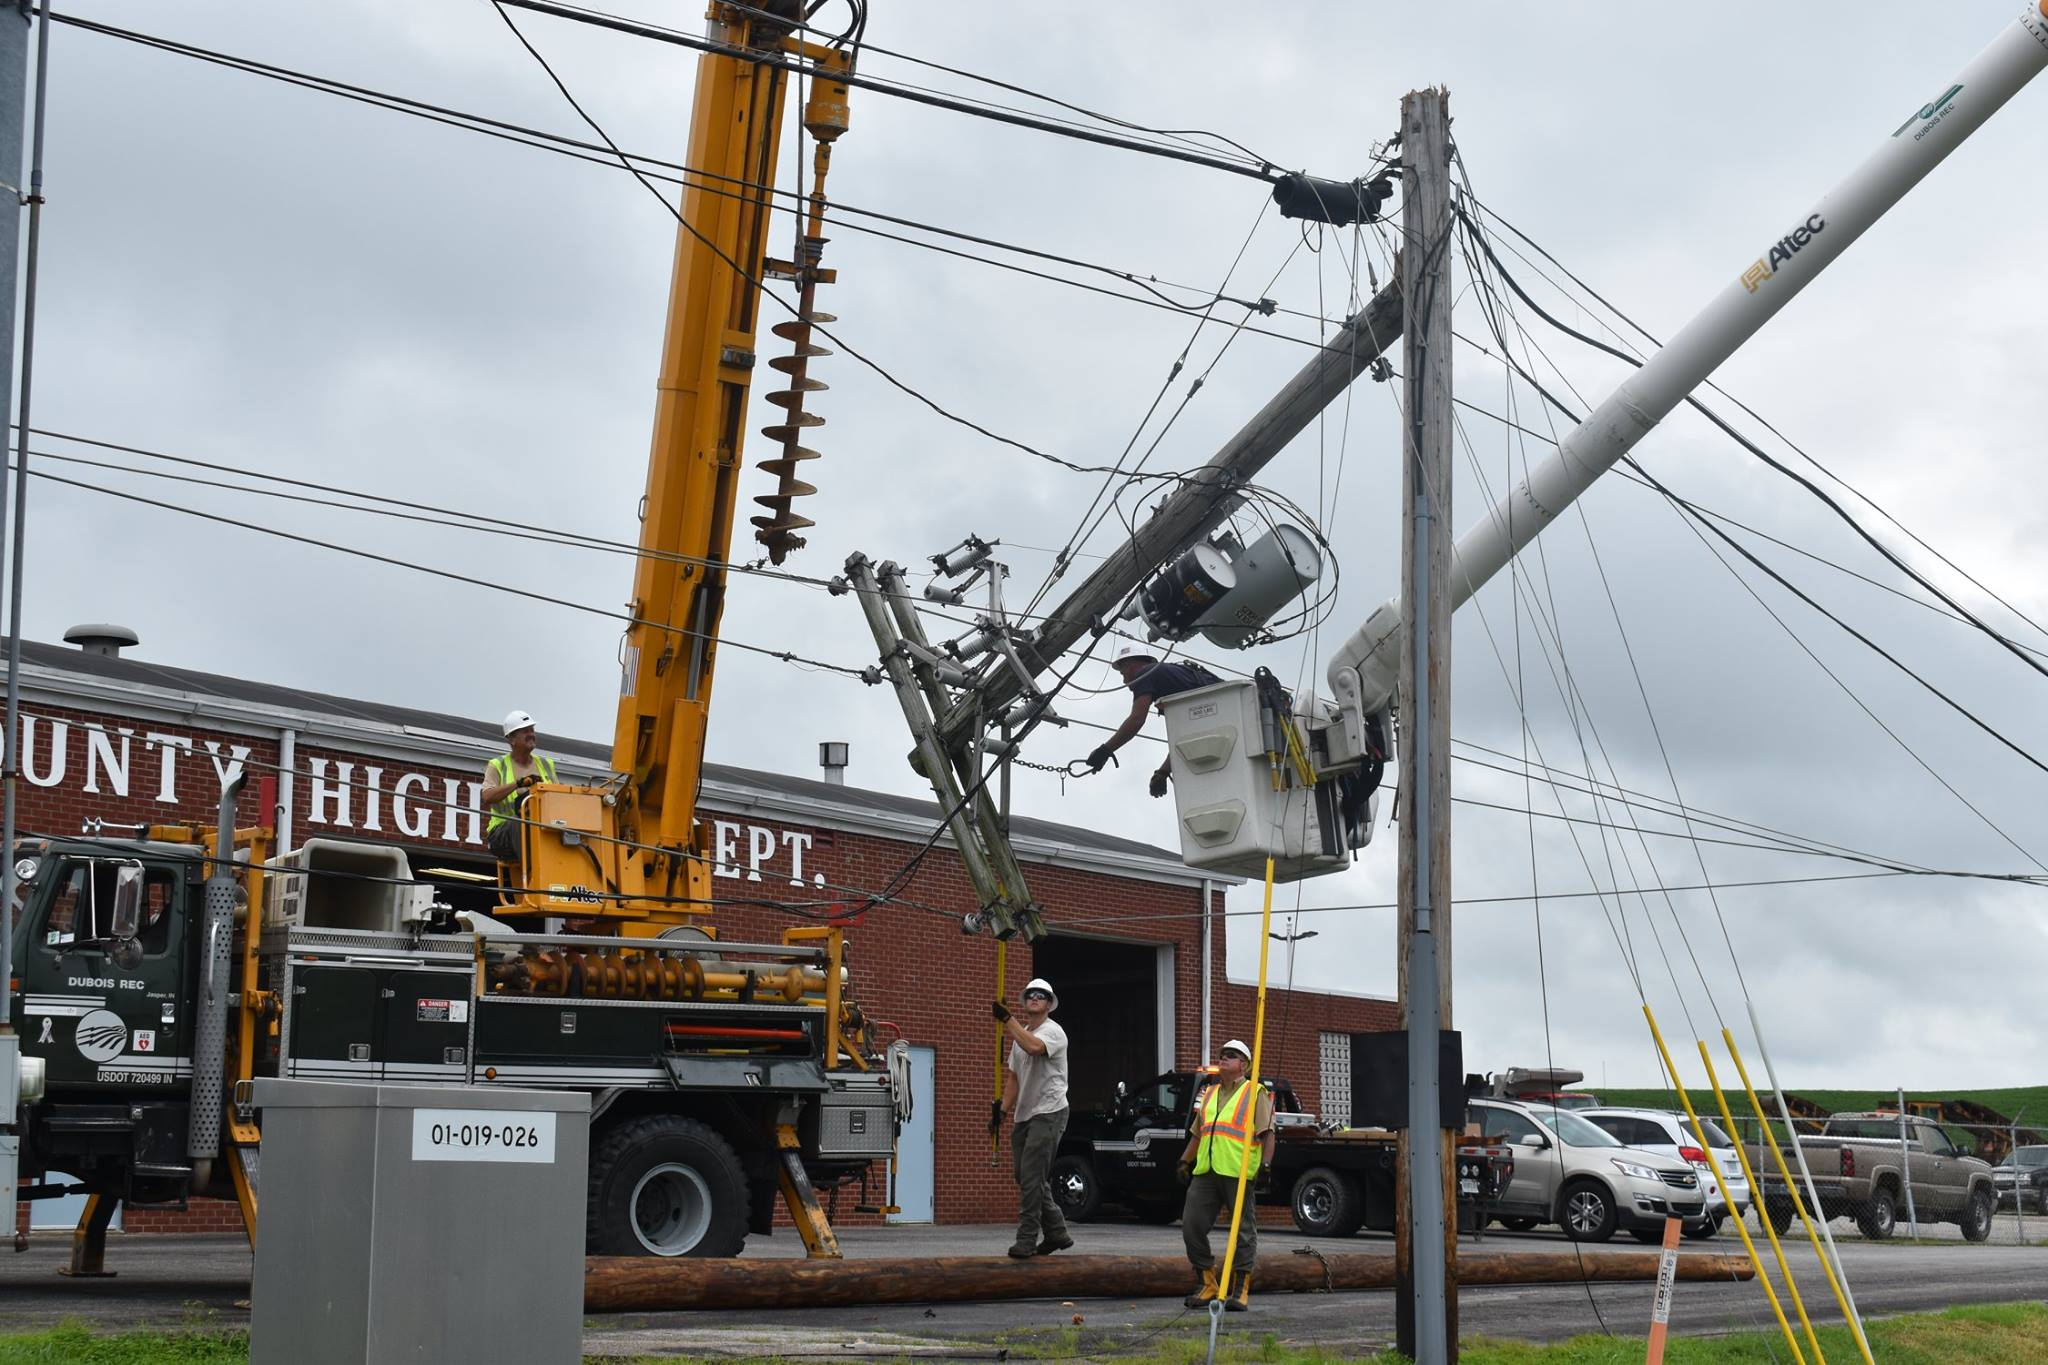 Power Restored After Truck Brings Down Lines